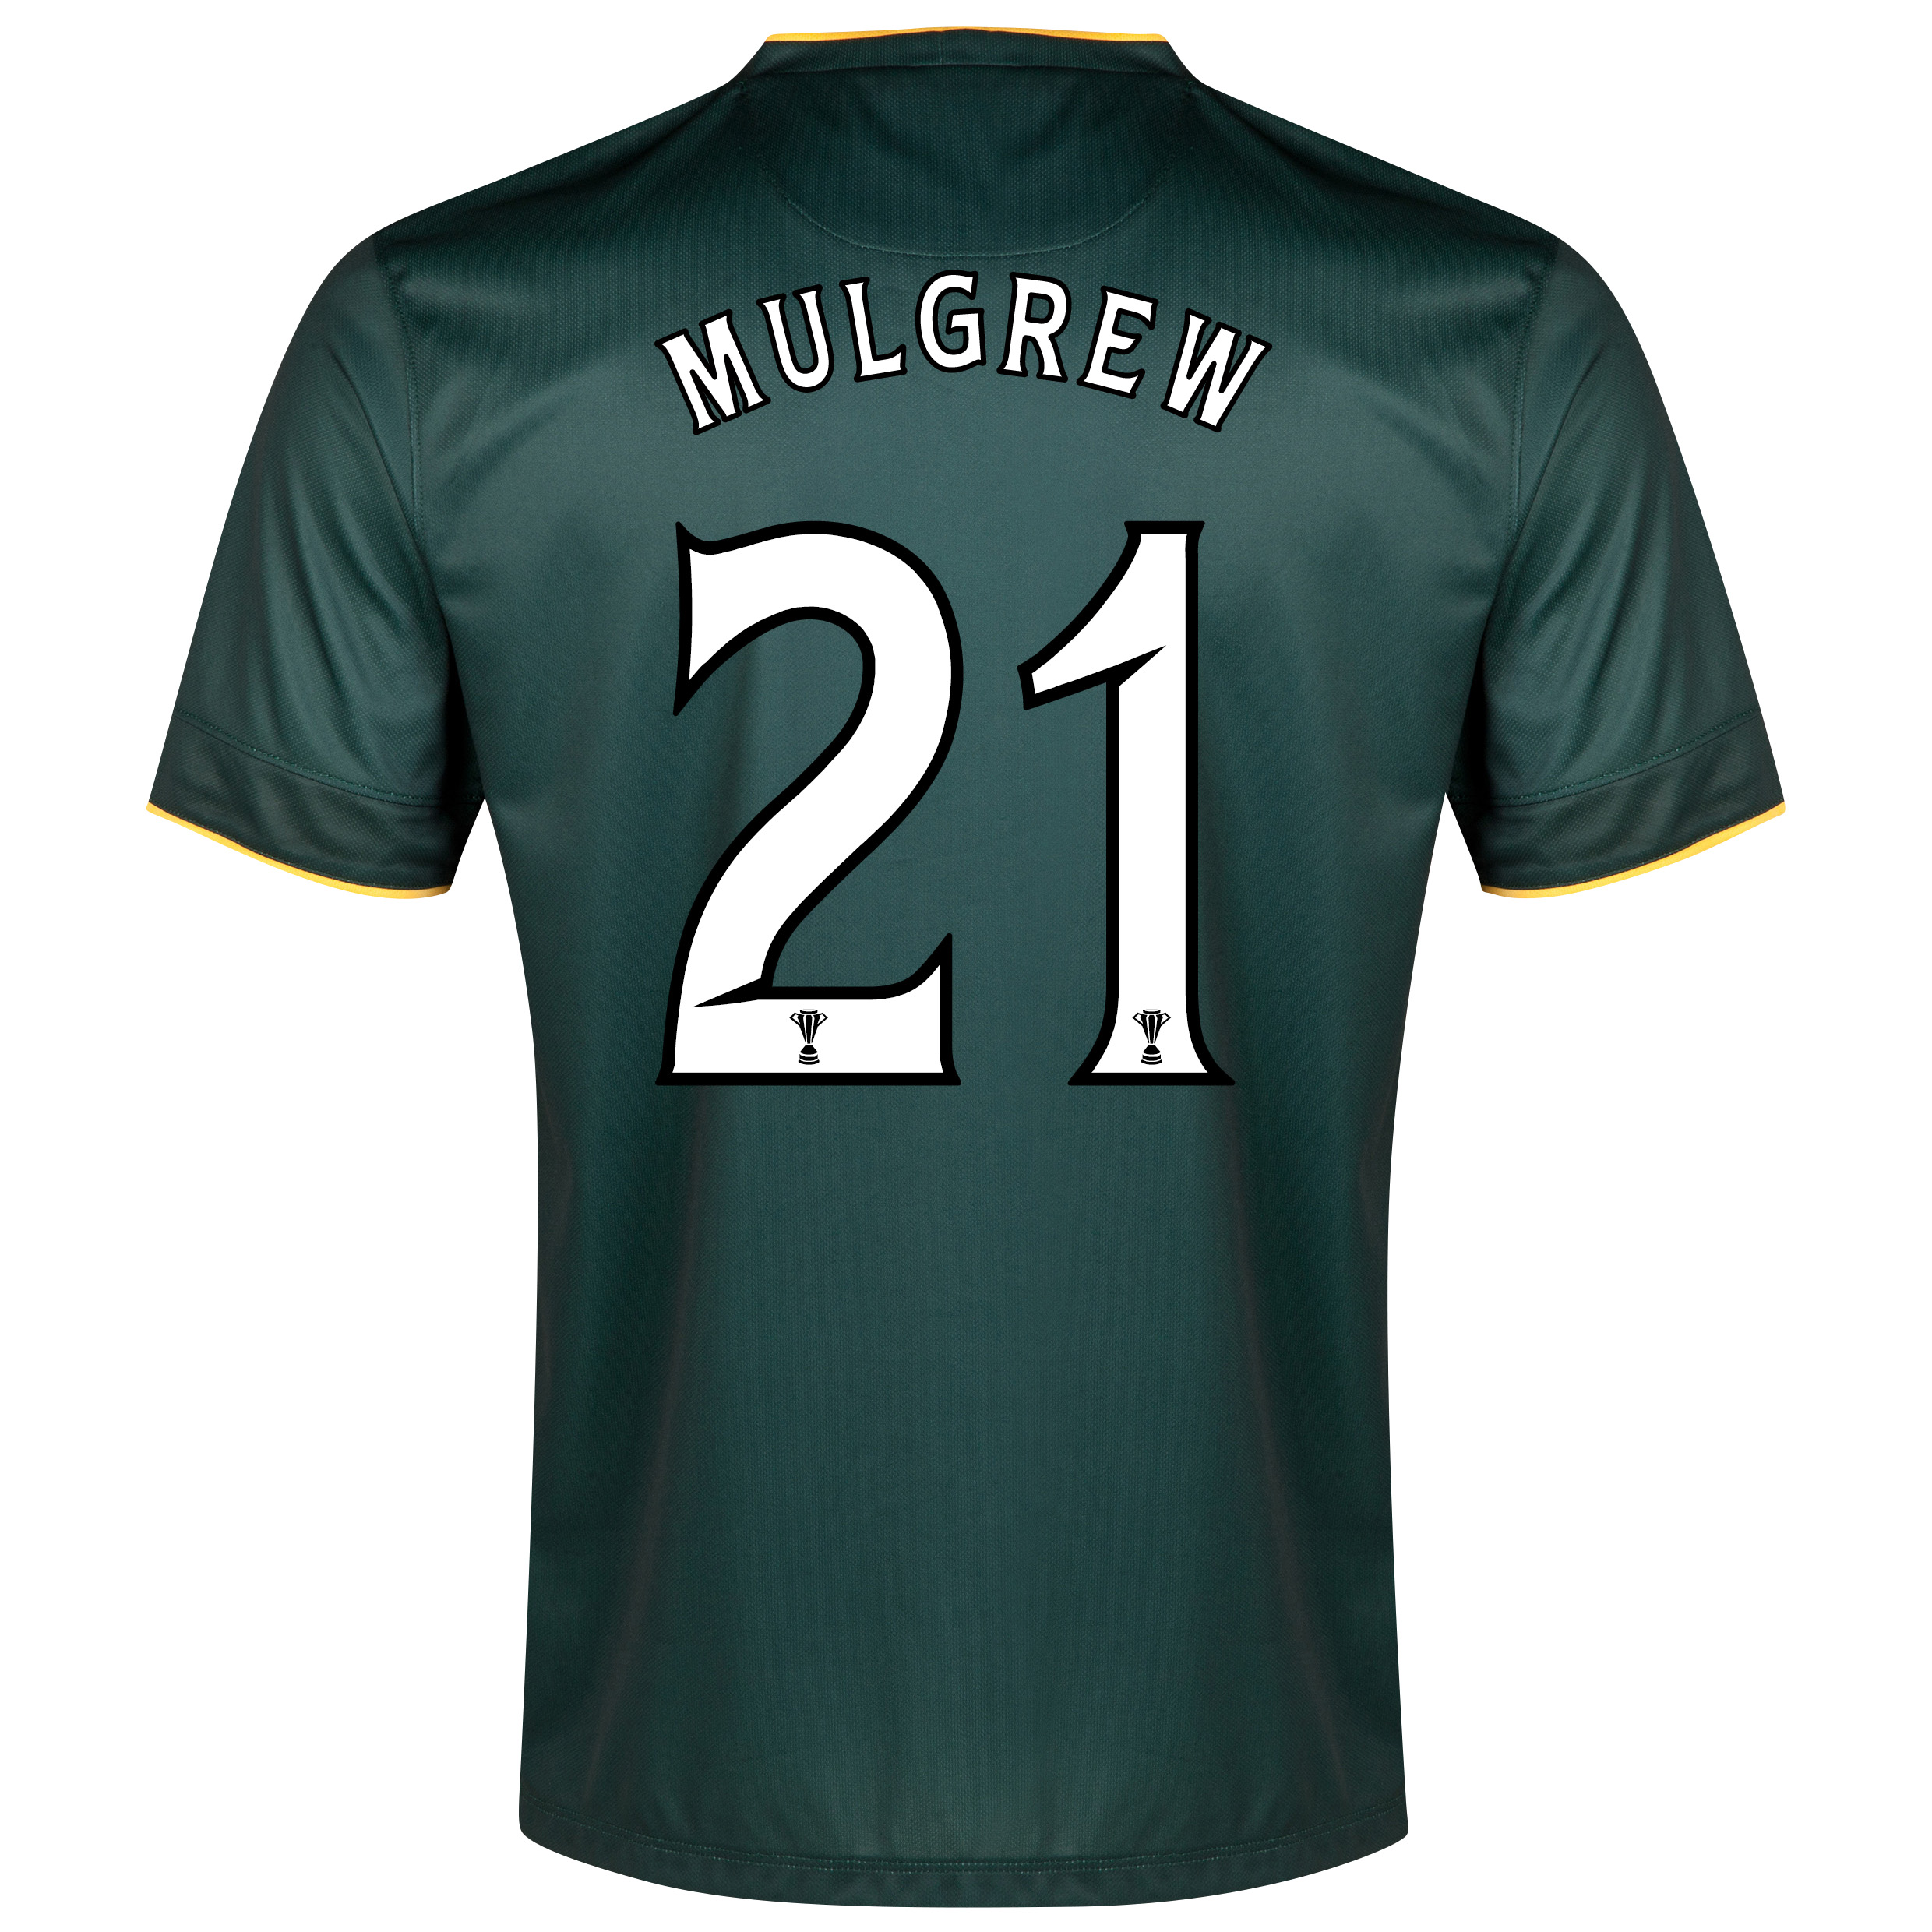 Celtic Away Shirt 2014/15 - Unsponsored Green with Mulgrew 21 printing